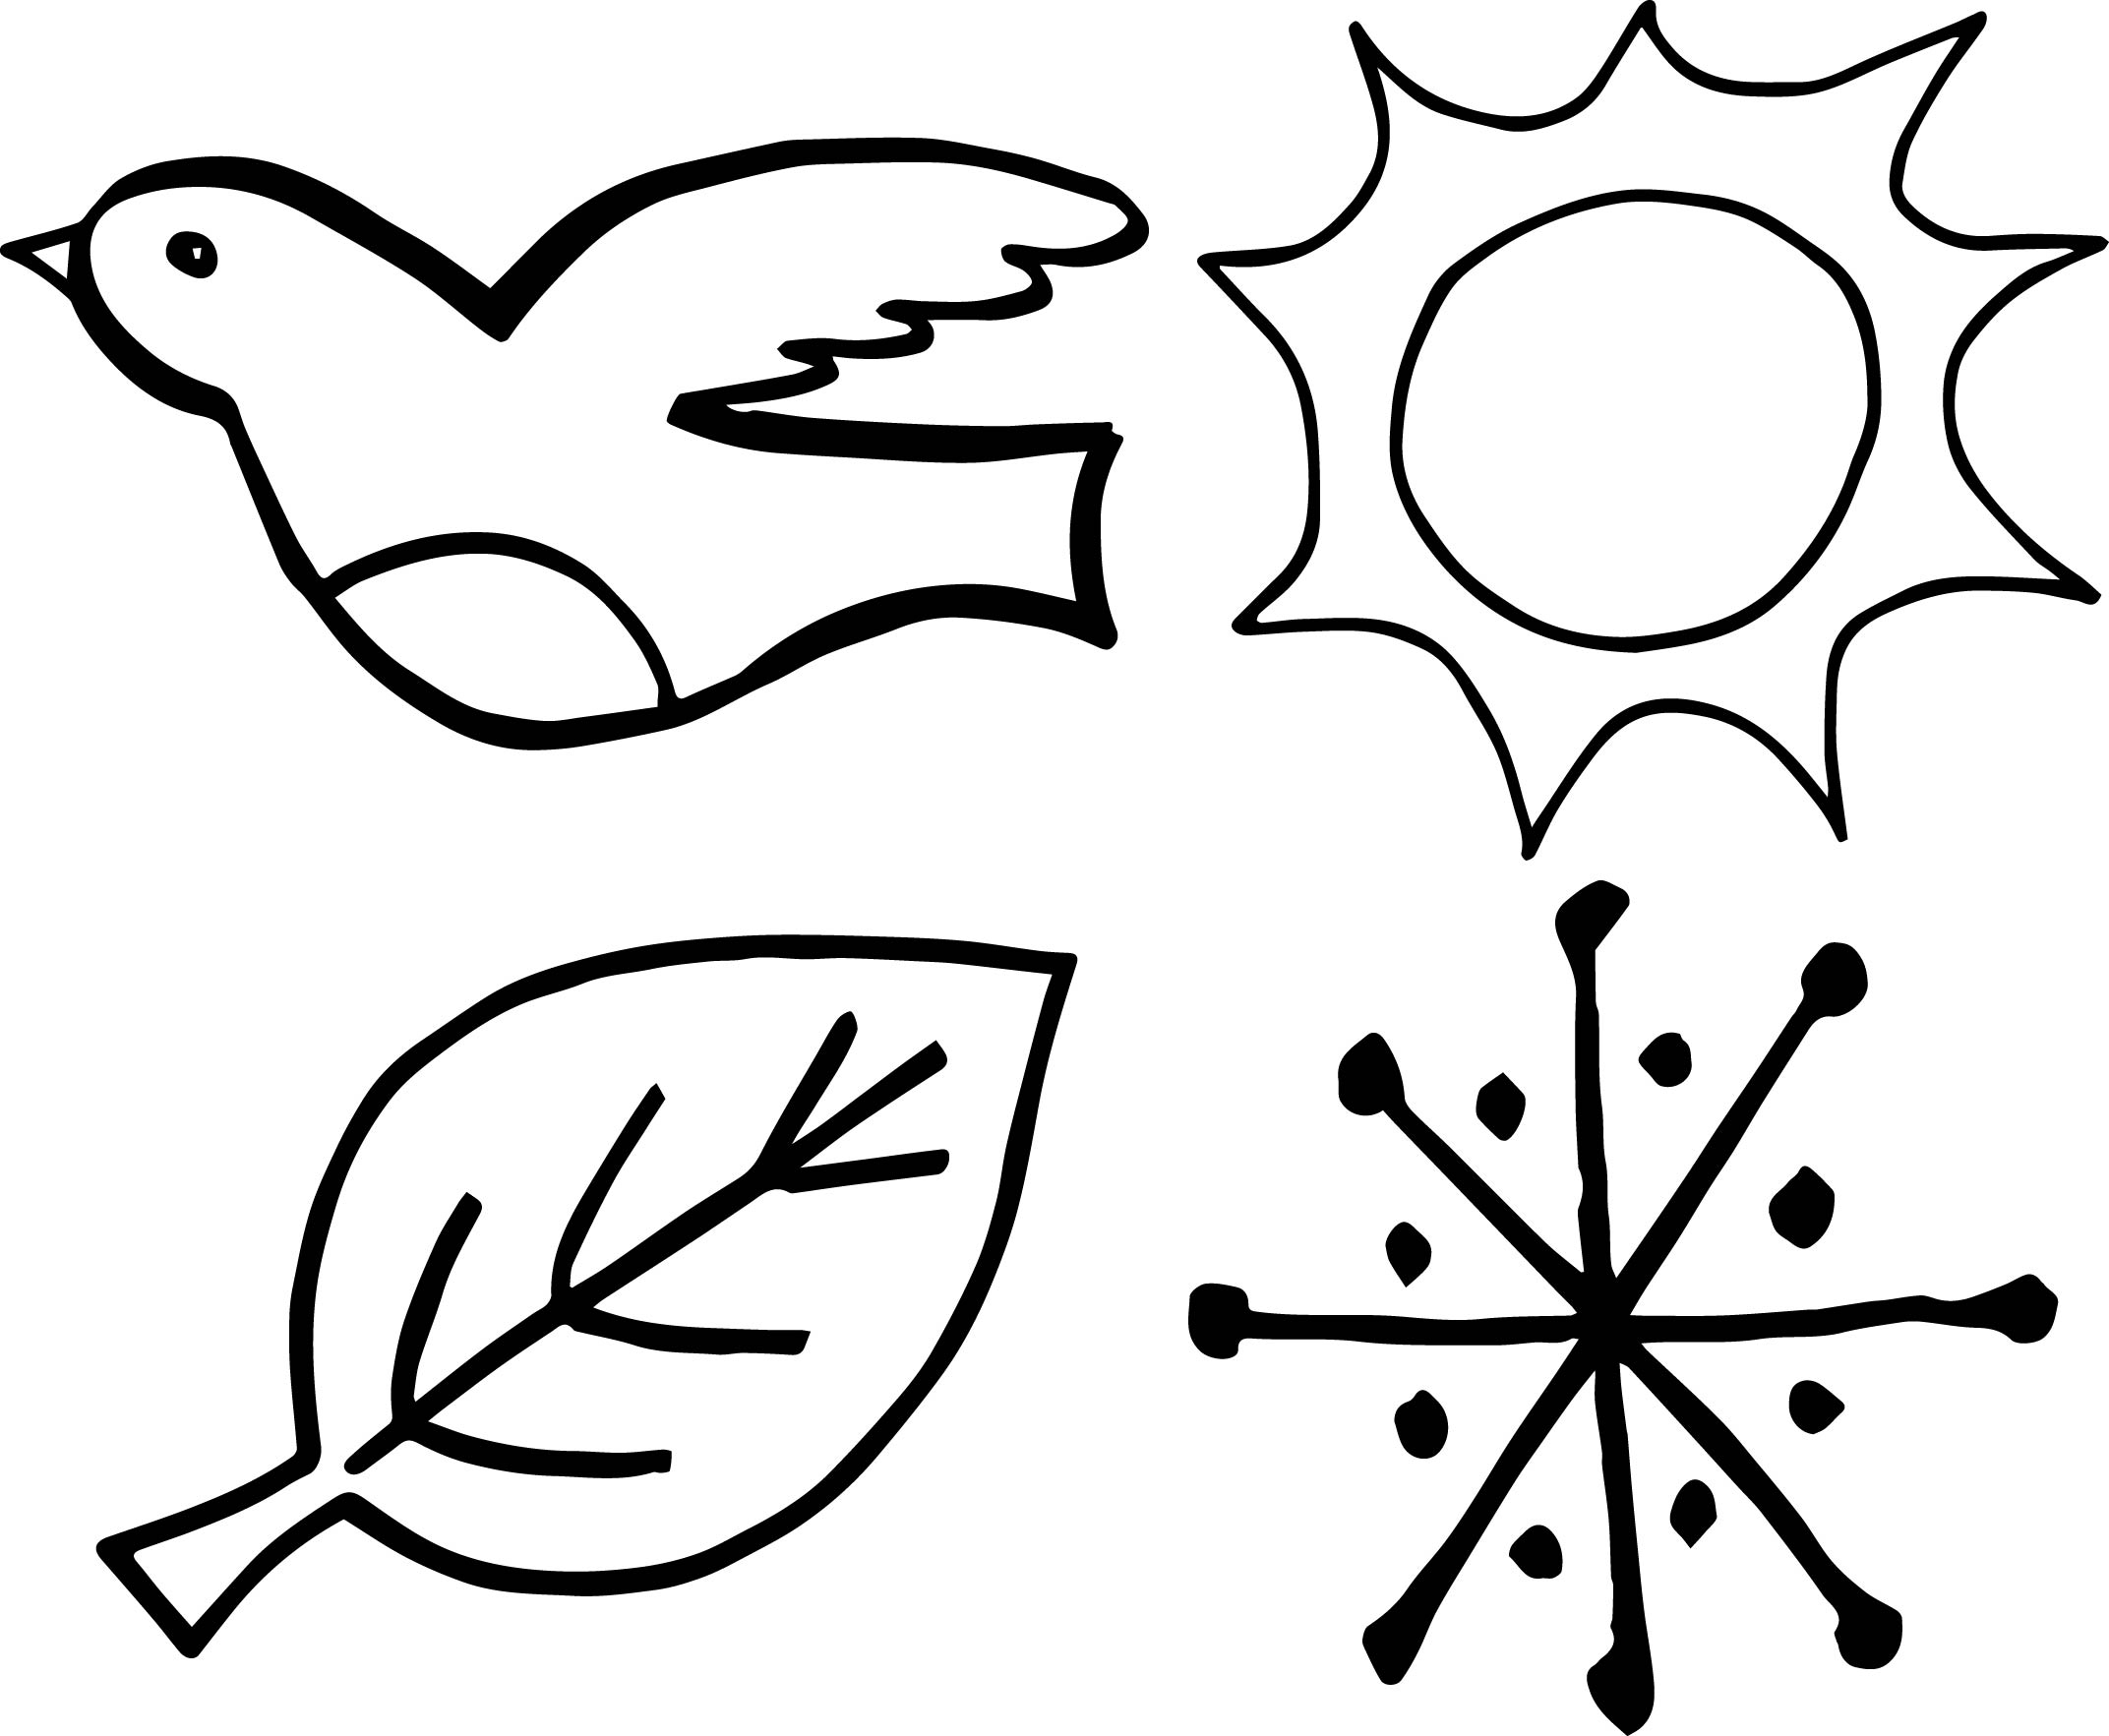 4 seasons bird leaf sun snow coloring page for Seasons coloring pages